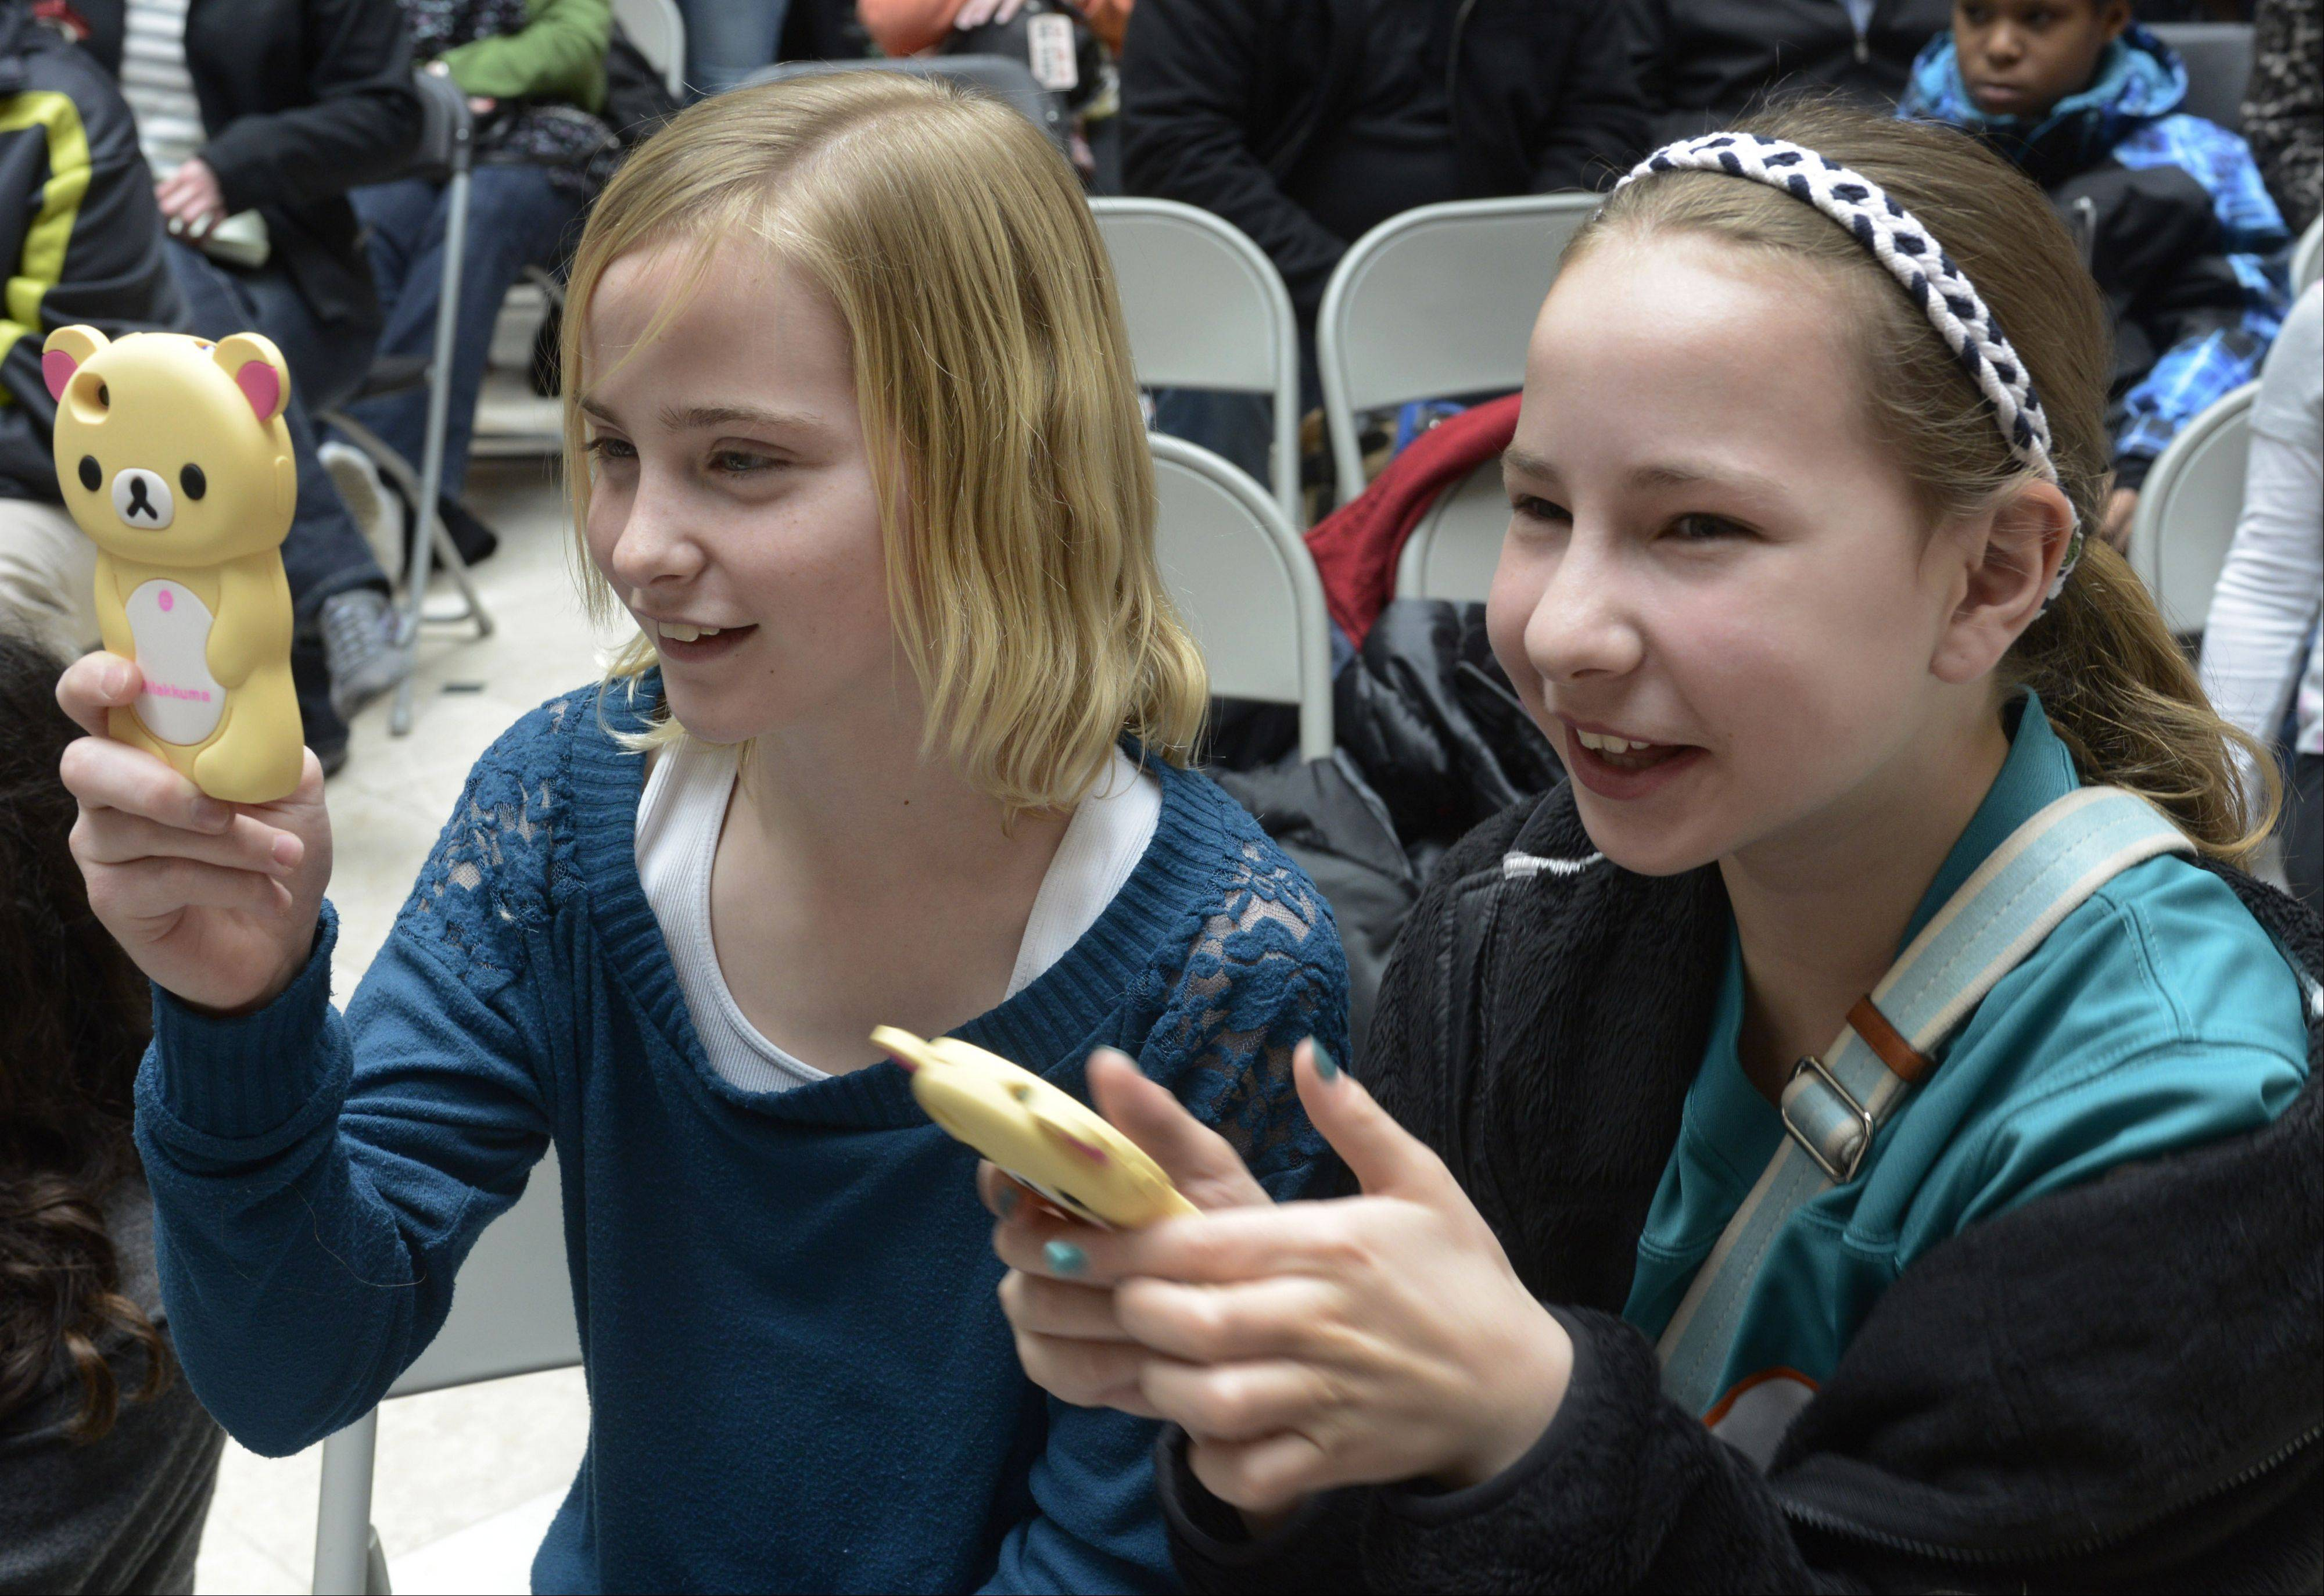 Leah Wilkowski, left, and Madison Ellis, both age 12 of Vernon Hills, shoot video during Saturday's St. Baldrick's Foundation fundraiser at Westfield Hawthorn Mall in Vernon Hills.